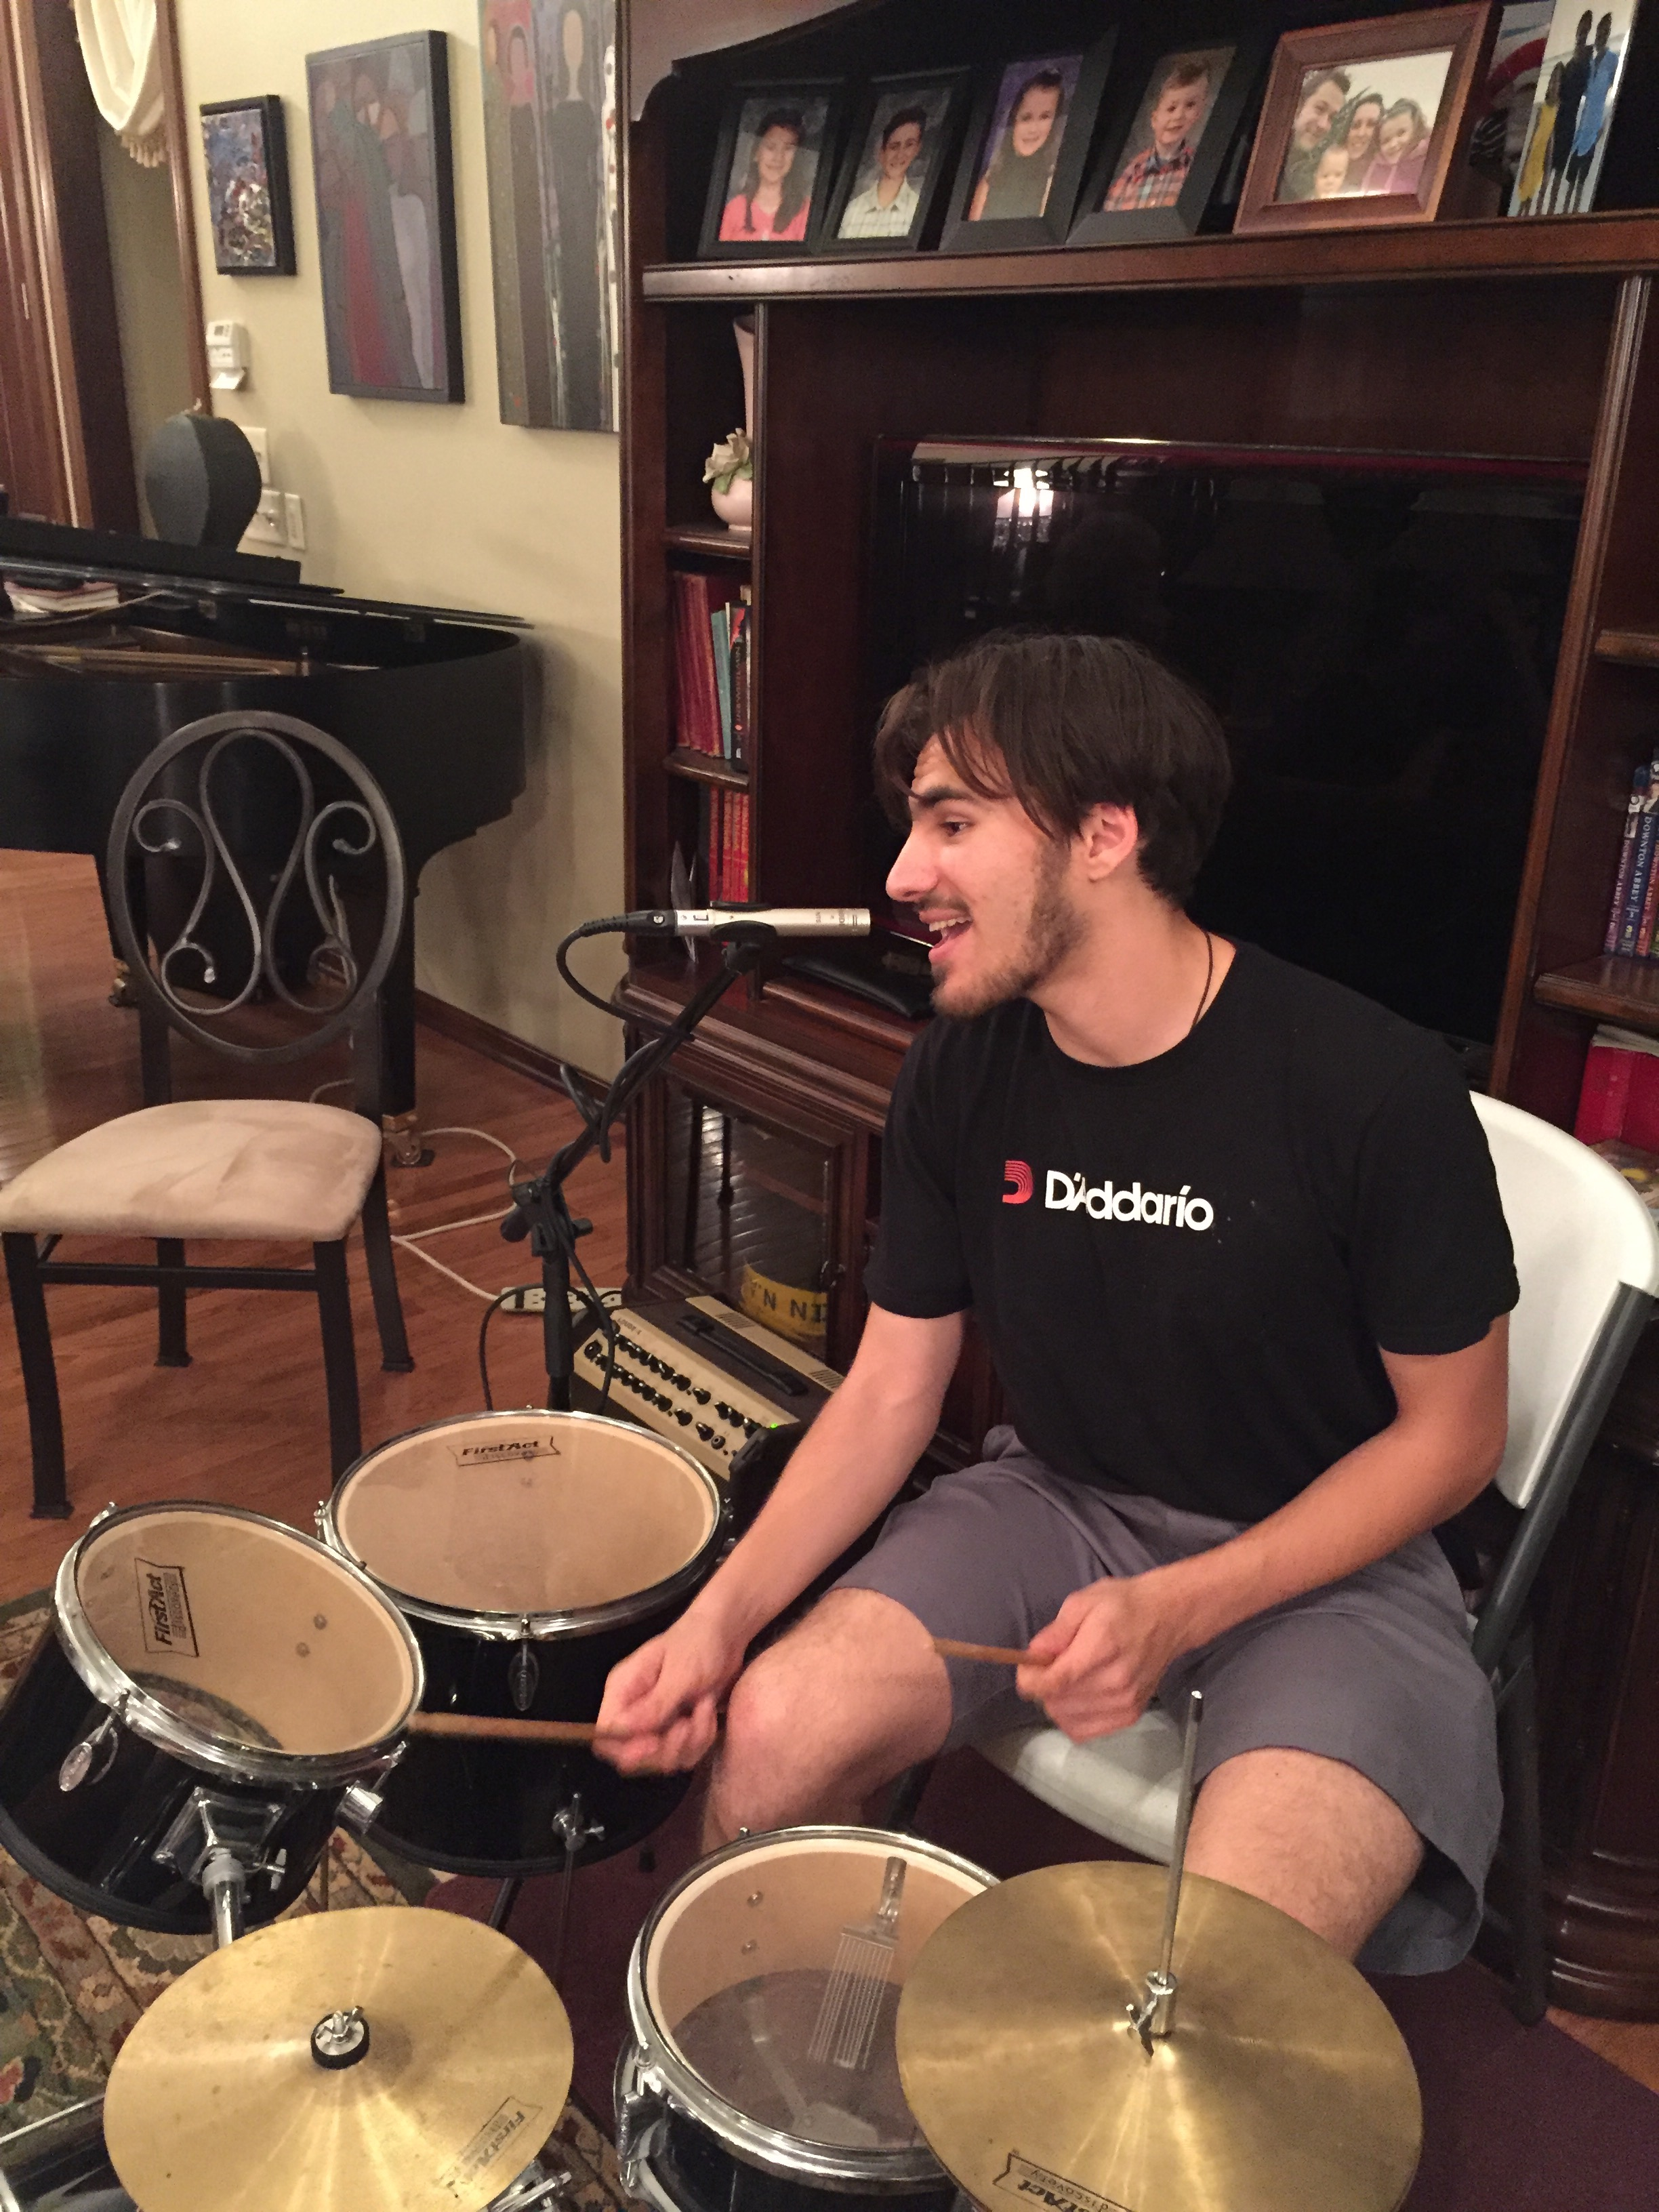 Mohit sings one while drumming